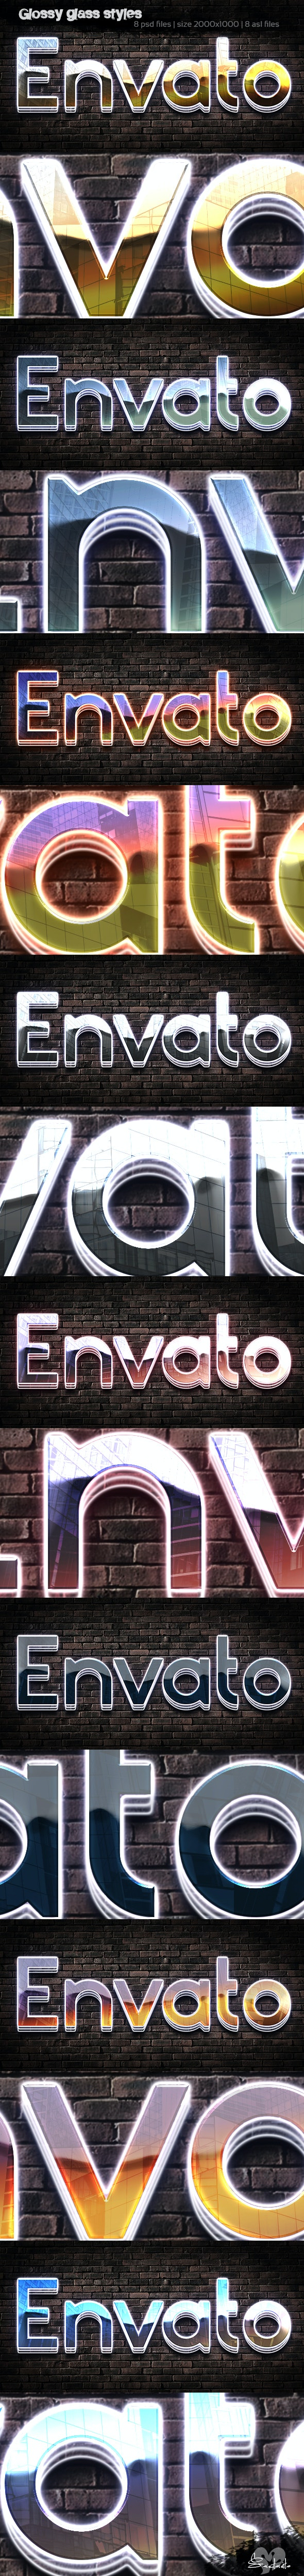 Glossy Glass 3D Style - Text Effects Styles